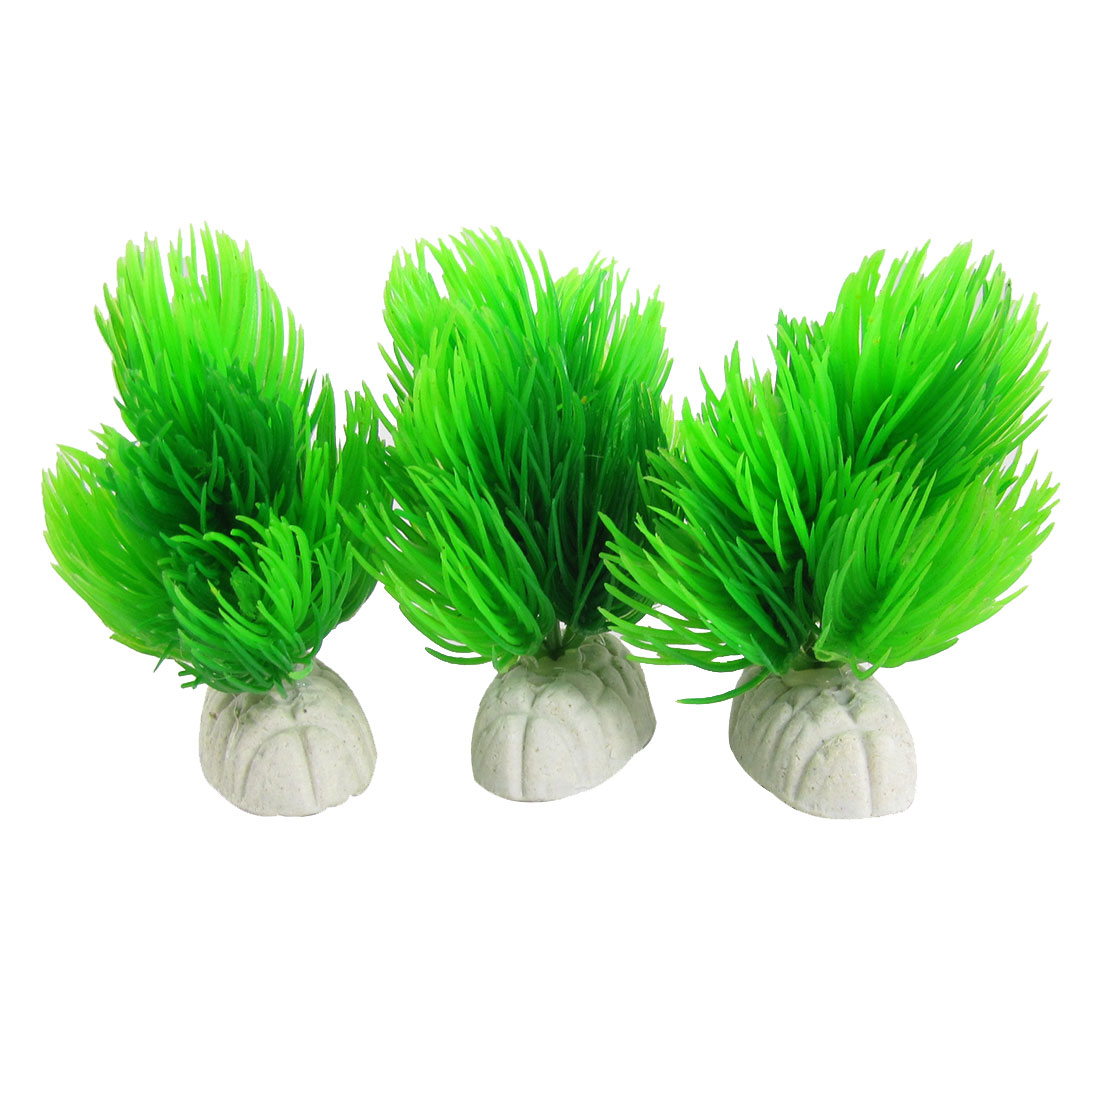 Unique Bargains 3 Pcs Aquascaping Plants Grass Green Decor for Aquarium